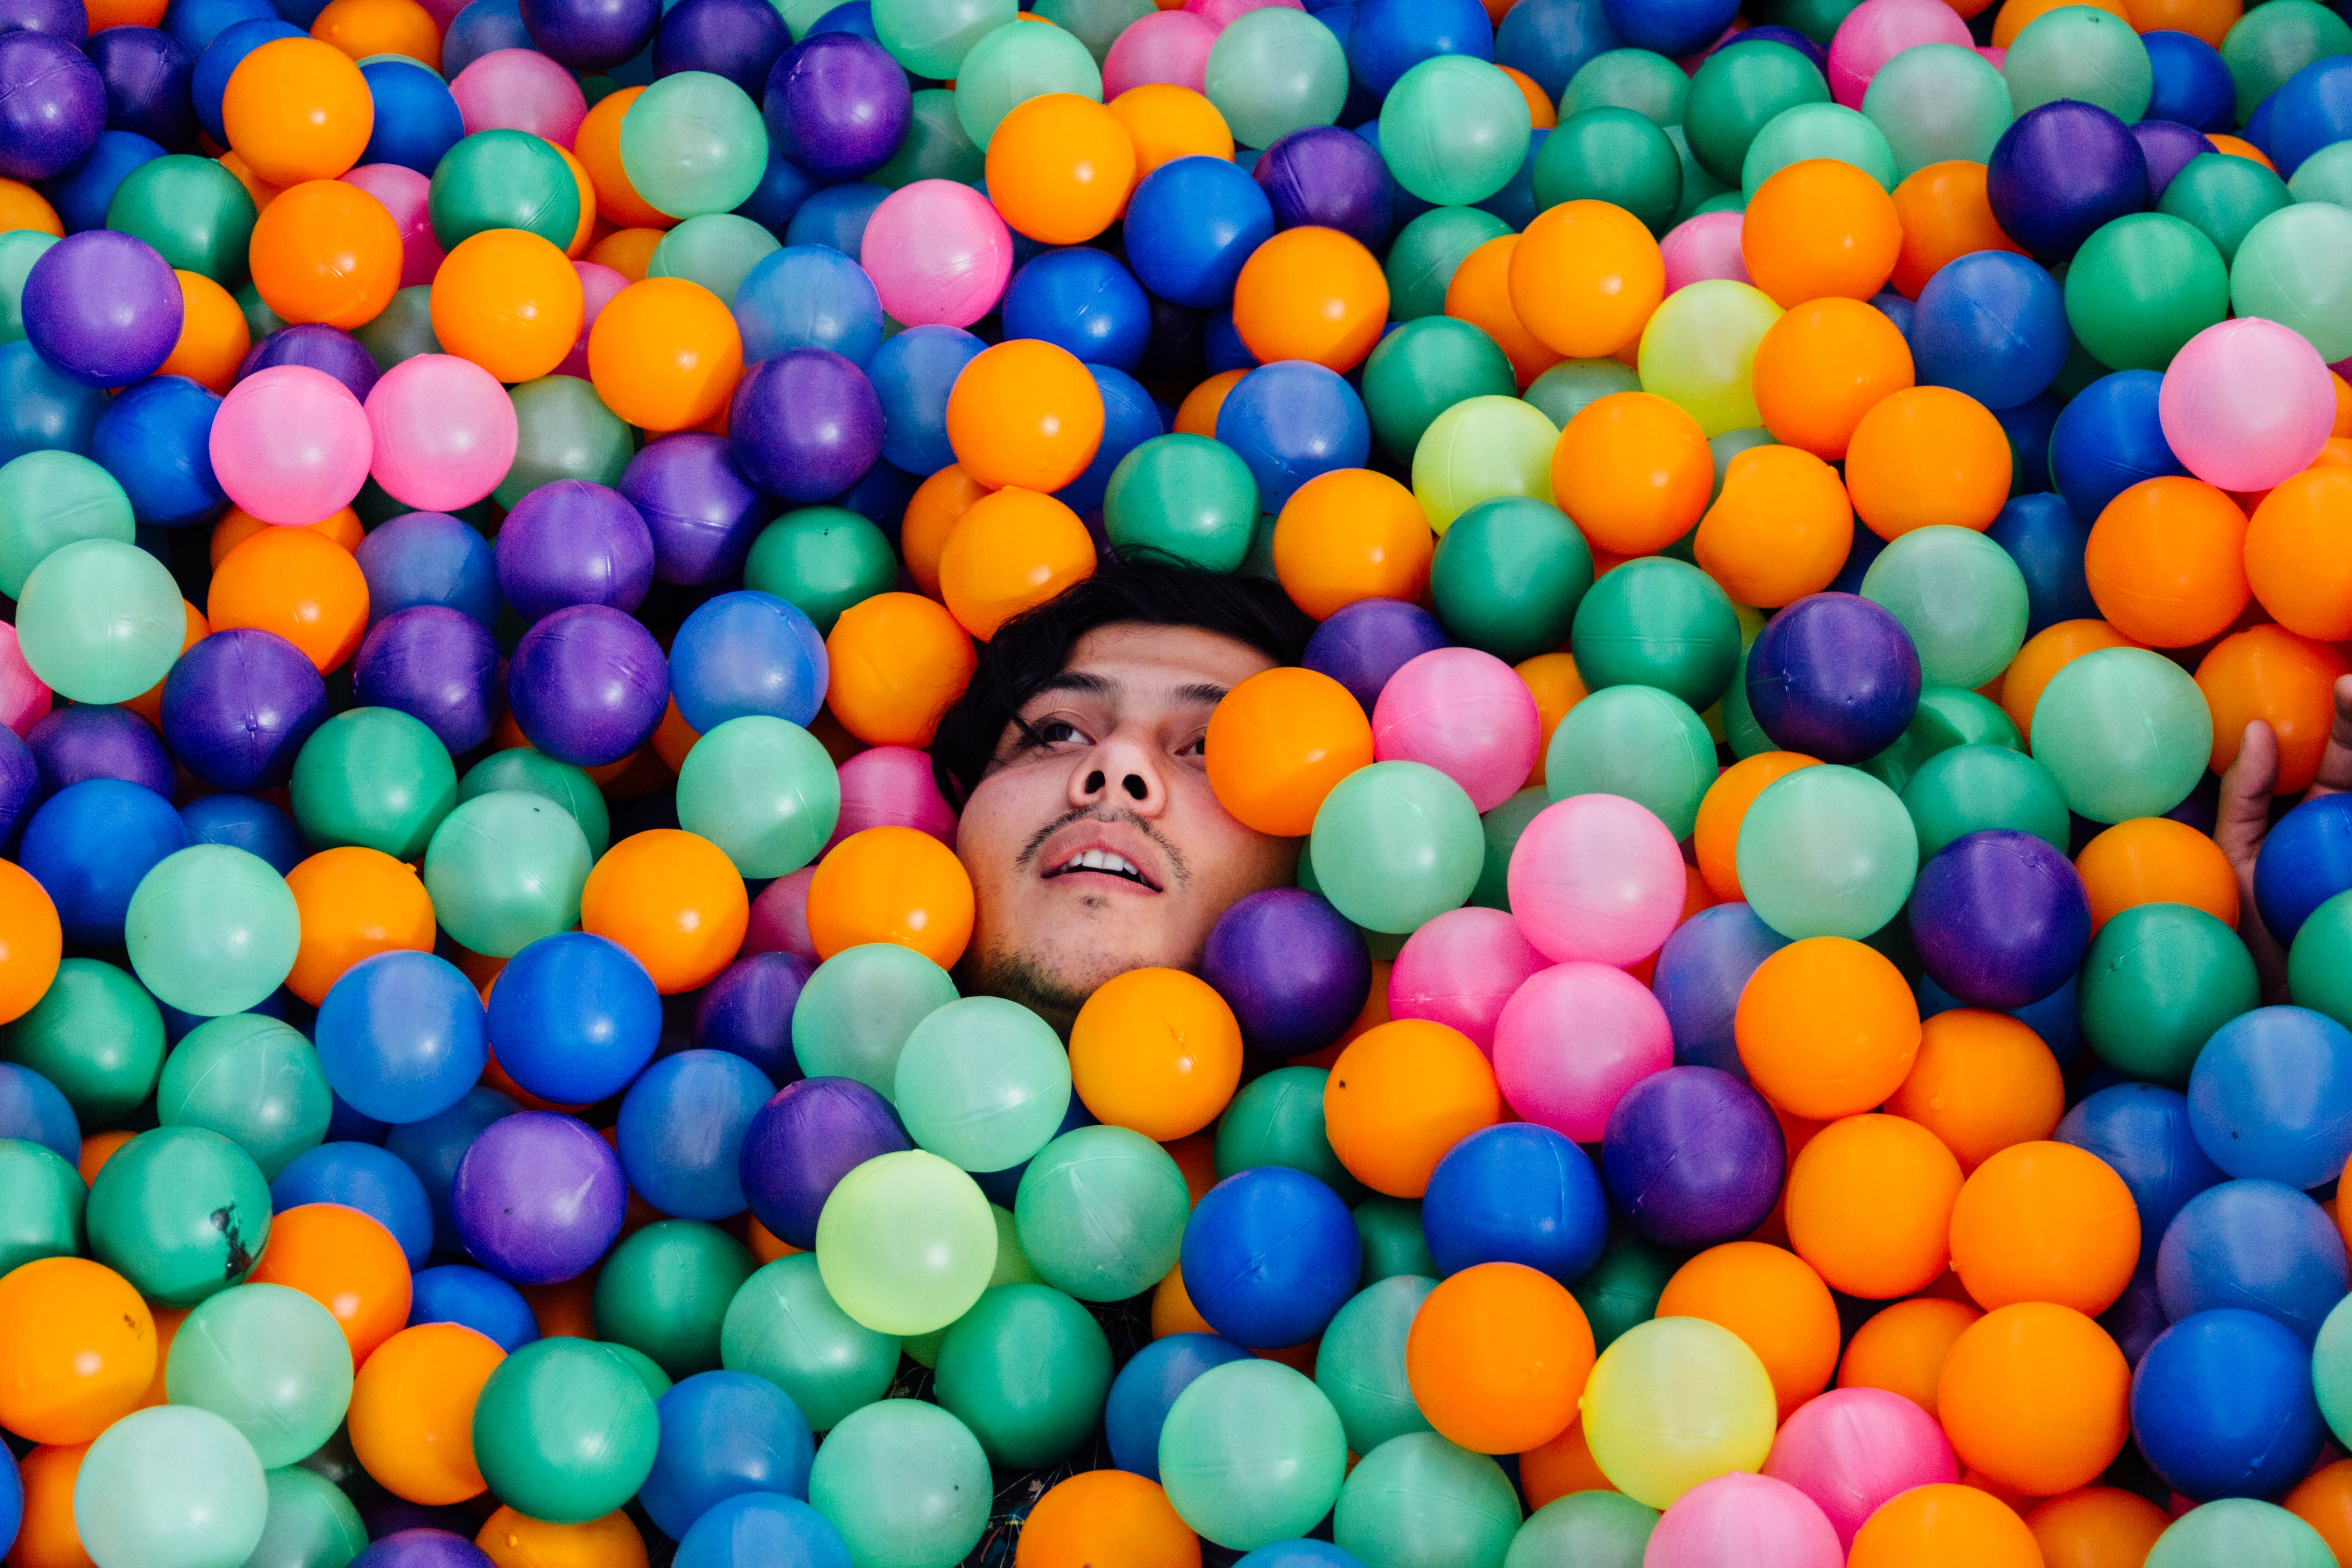 man lying in ball pit